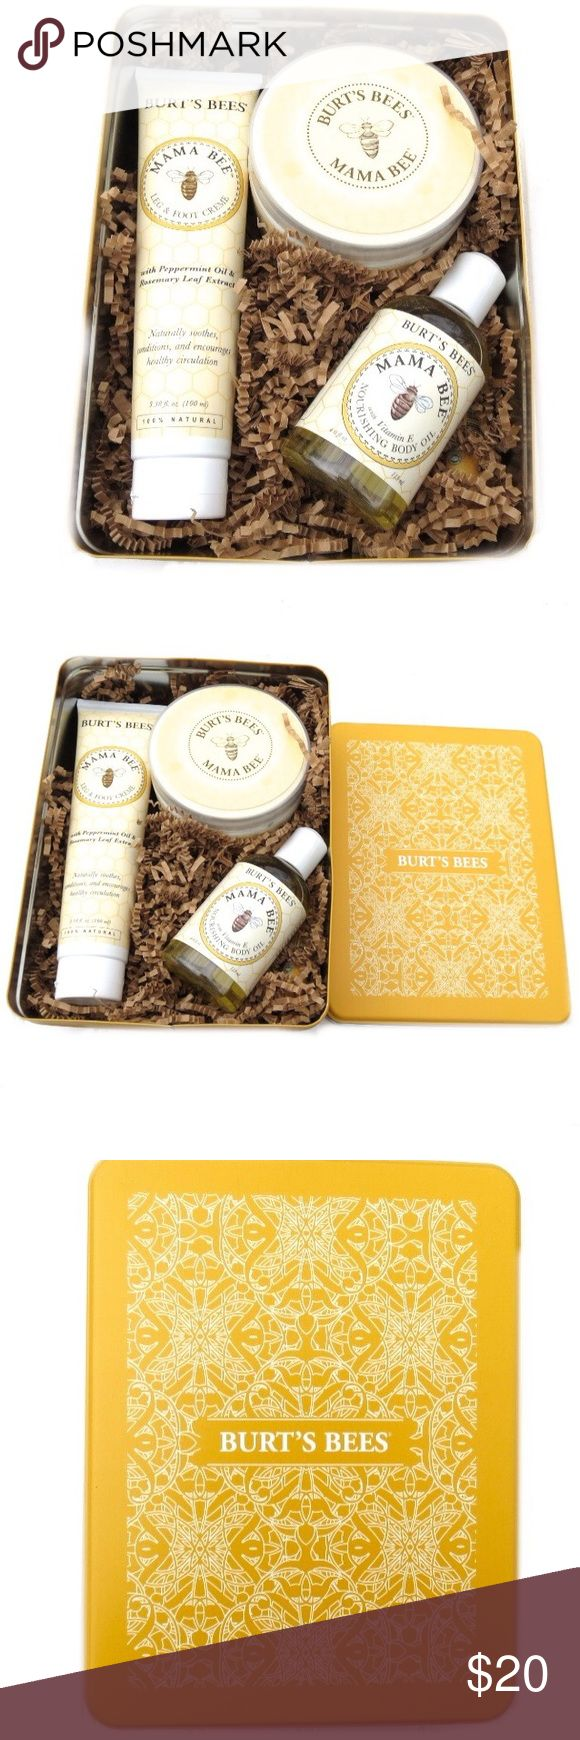 Burts Bees Mama Bee Body Lotion Oil Gift Set This listing is for a brand new Burts Bees 'Mama Bee' gift set. Includes nourishing body oil, belly butter, and leg & foot creme. Comes in a Burts Bees classic tin. Brand new! Great gift! Burt's Bees Makeup